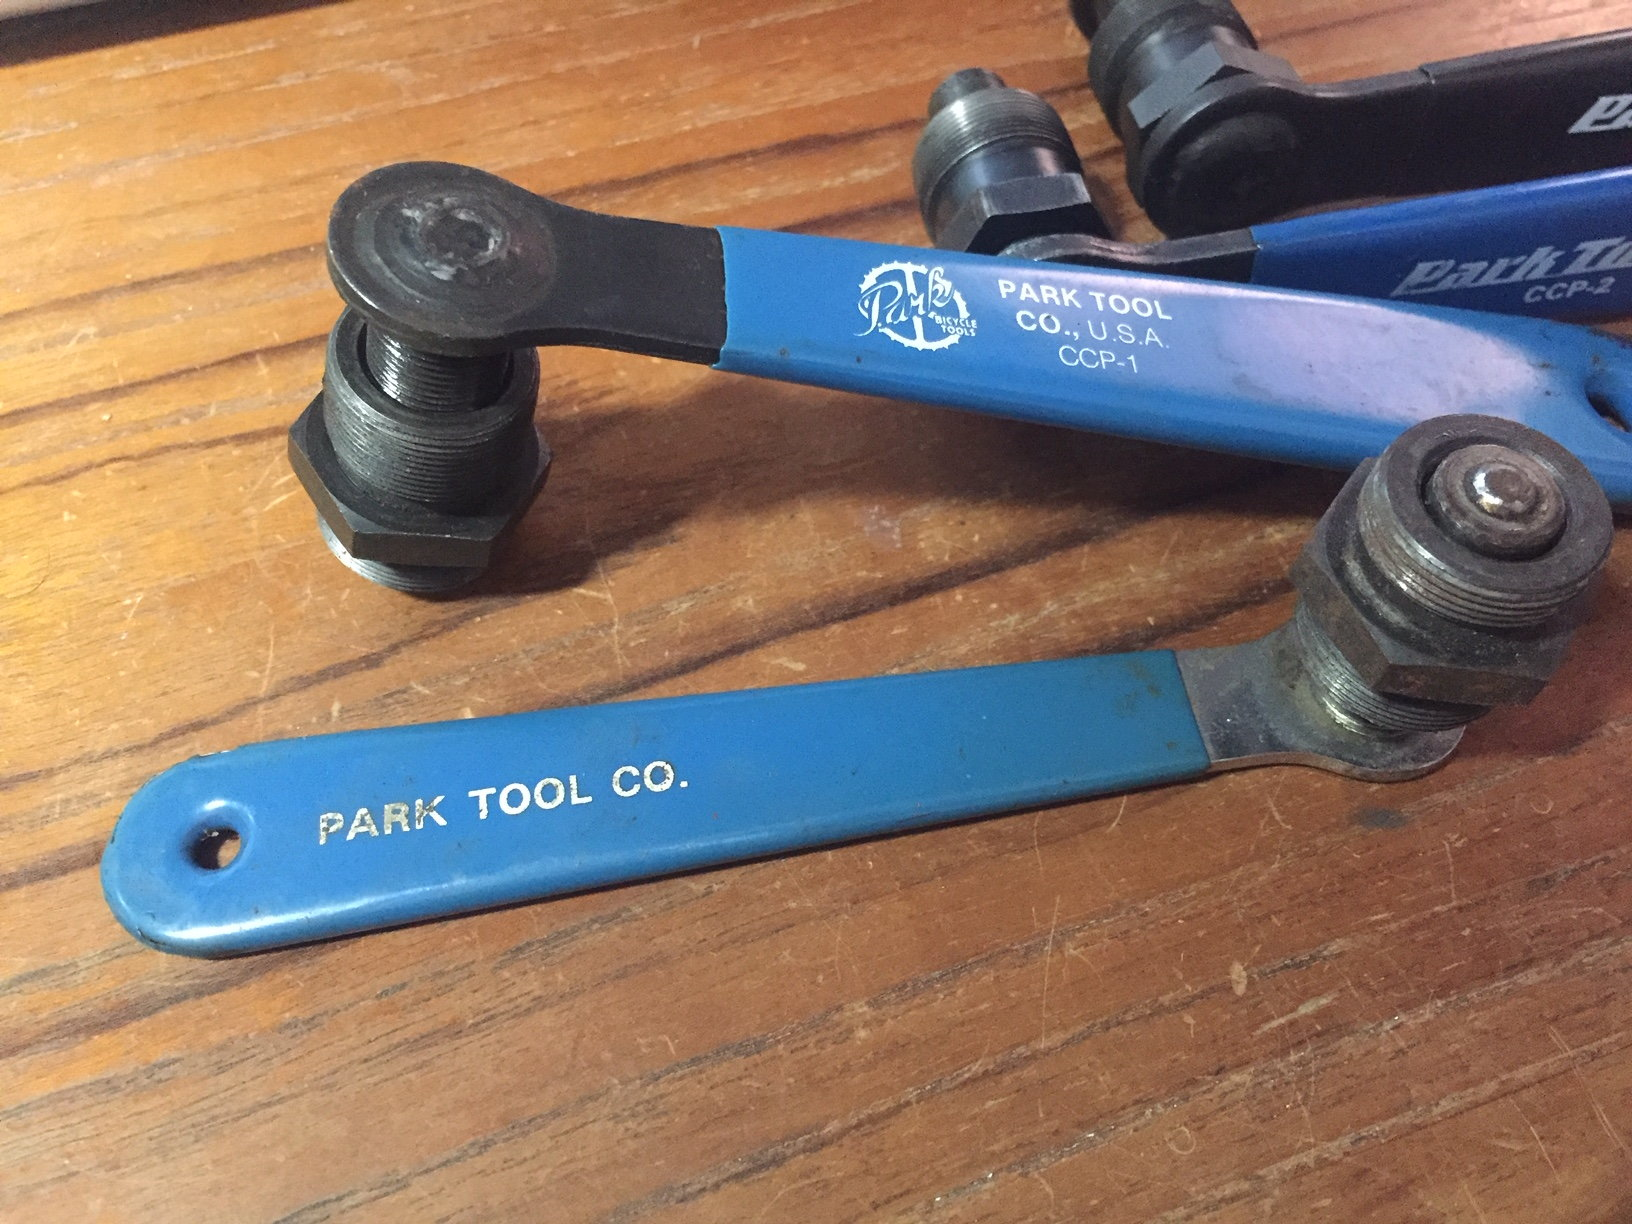 Park Tool CCP-22 Crank Puller for 22mm x 1 Thread Bicycle Crank Arms USA Made